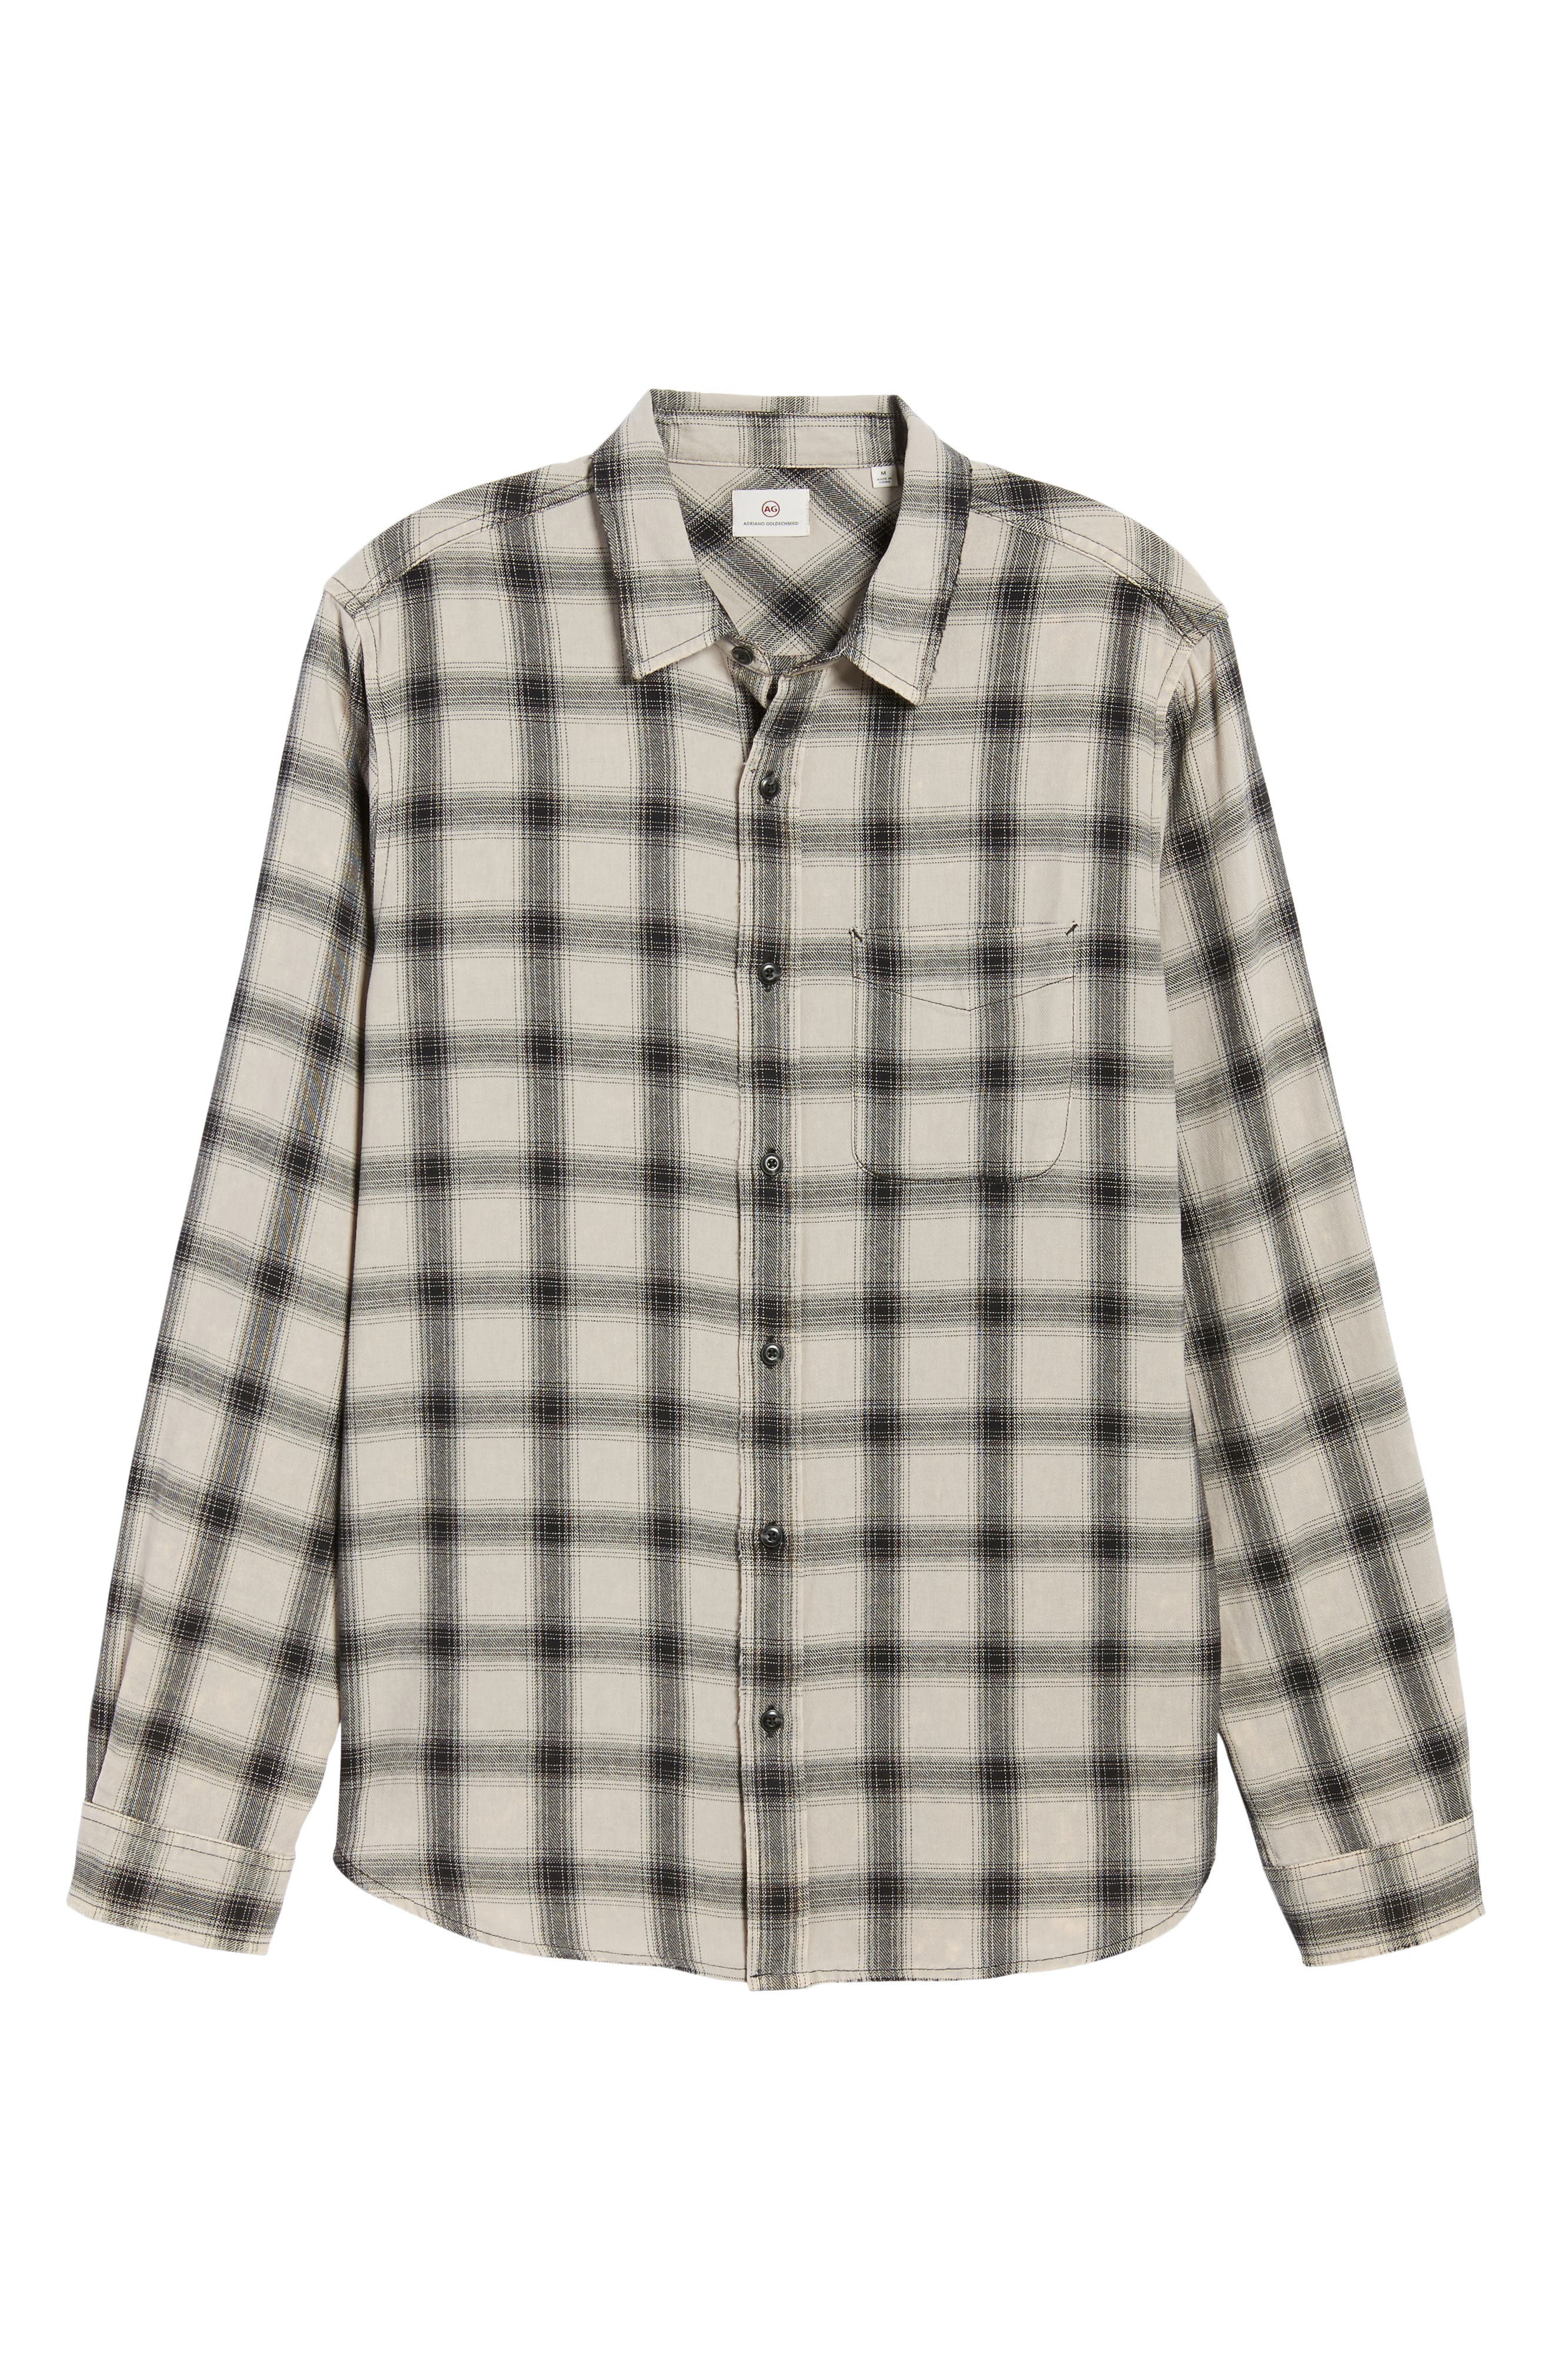 Colton Slim Fit Plaid Sport Shirt,                             Alternate thumbnail 6, color,                             250